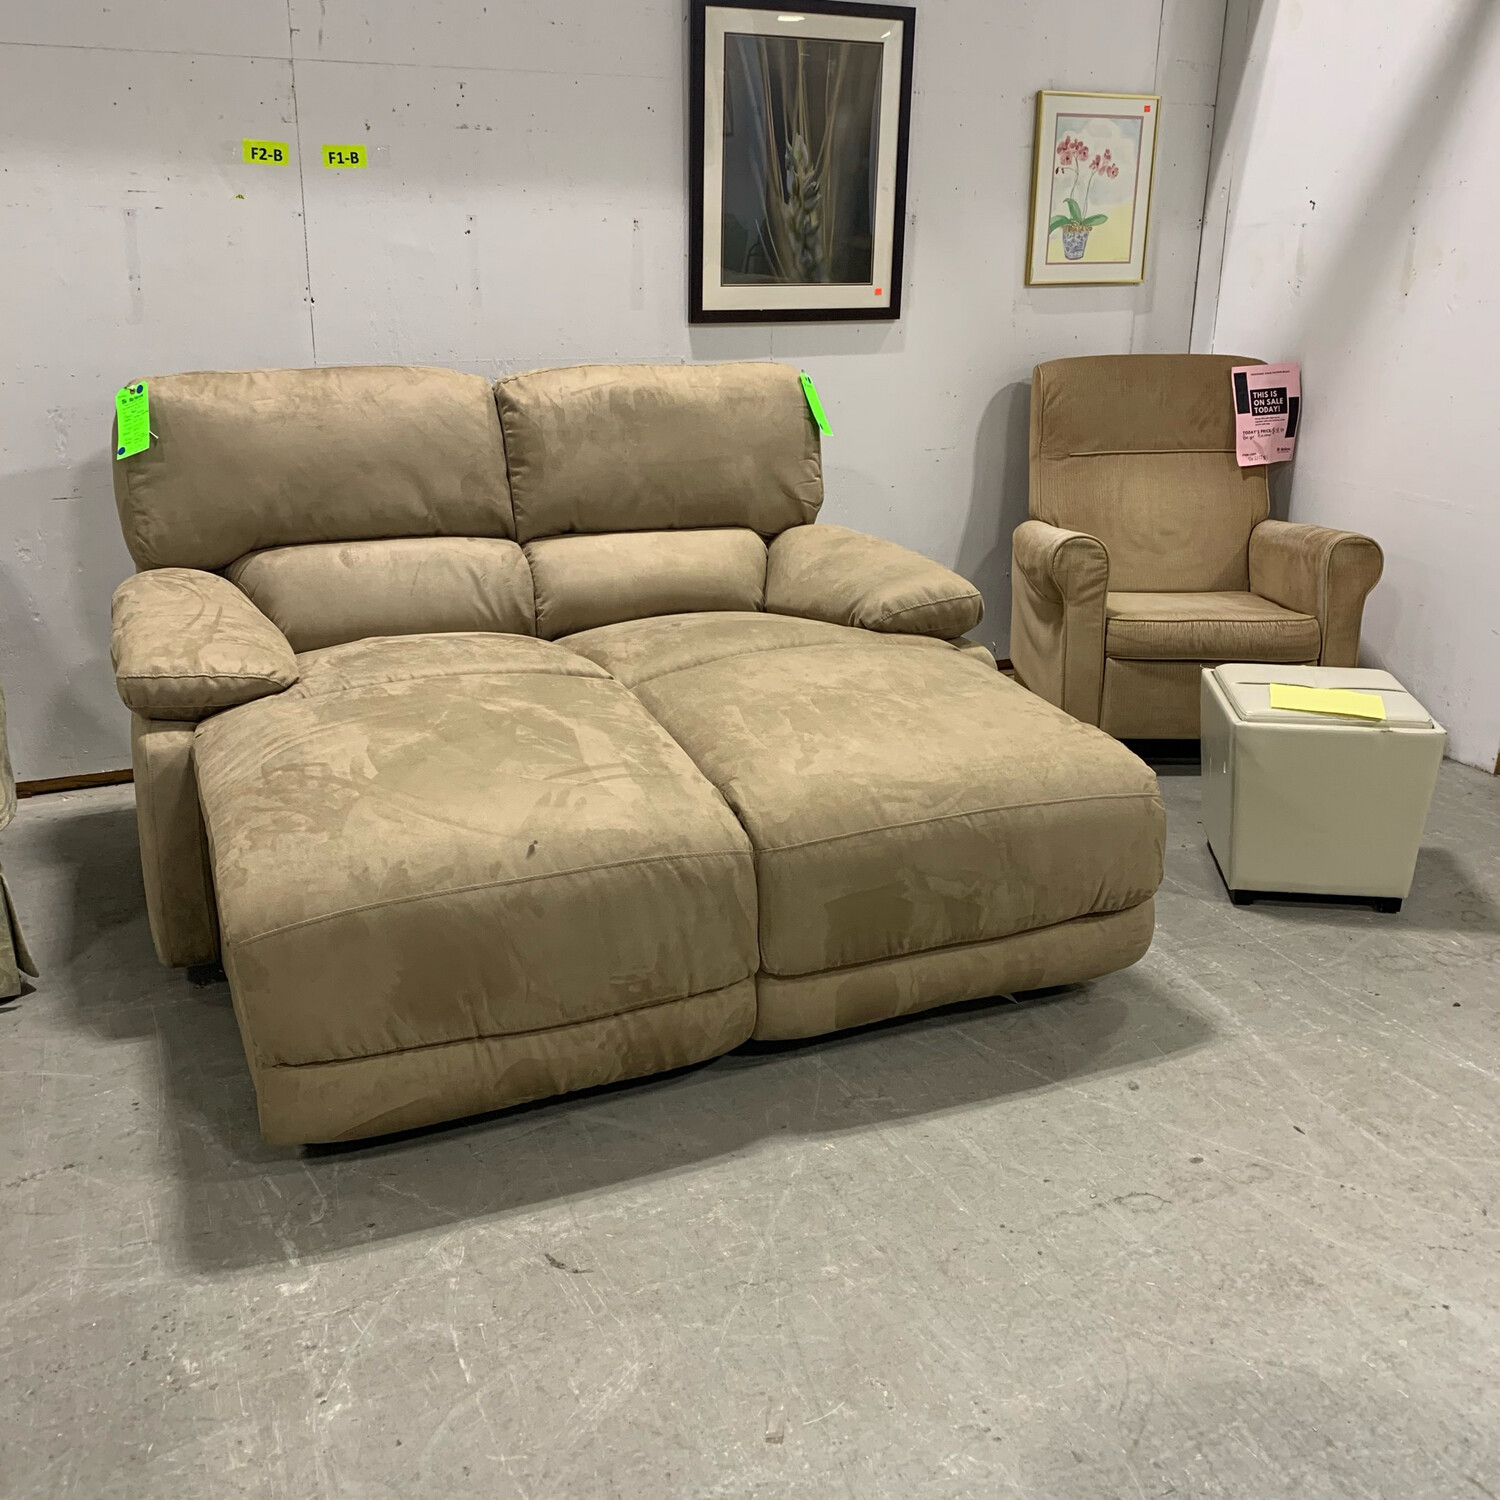 Macy's Incliner Beige Chaise ( Right Arm)